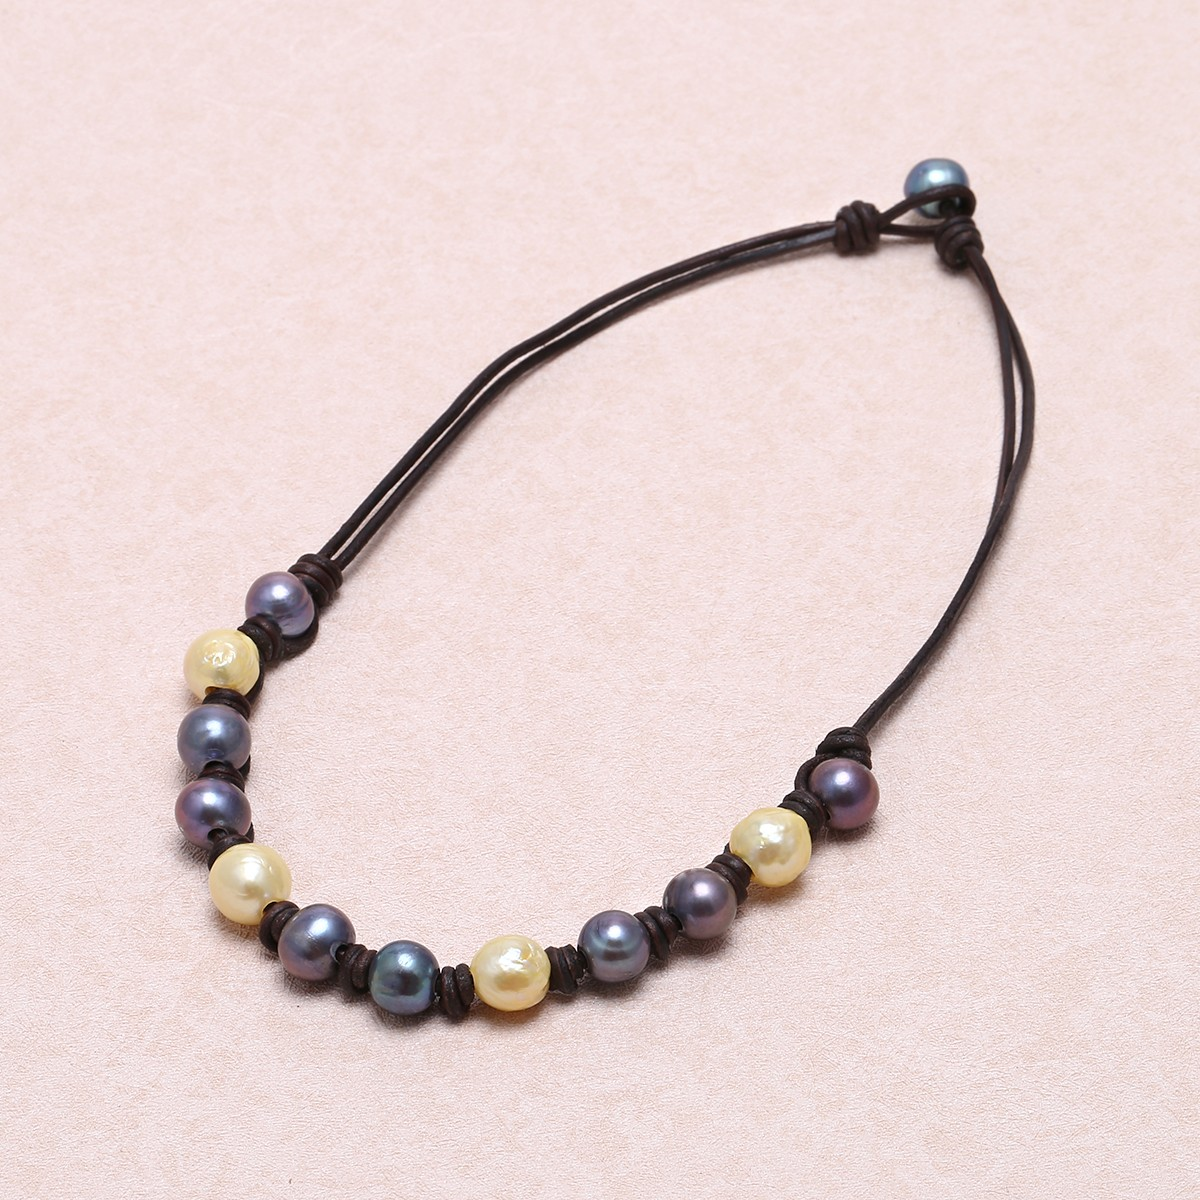 Freshwater pearl necklace, pearl and leather necklace ...